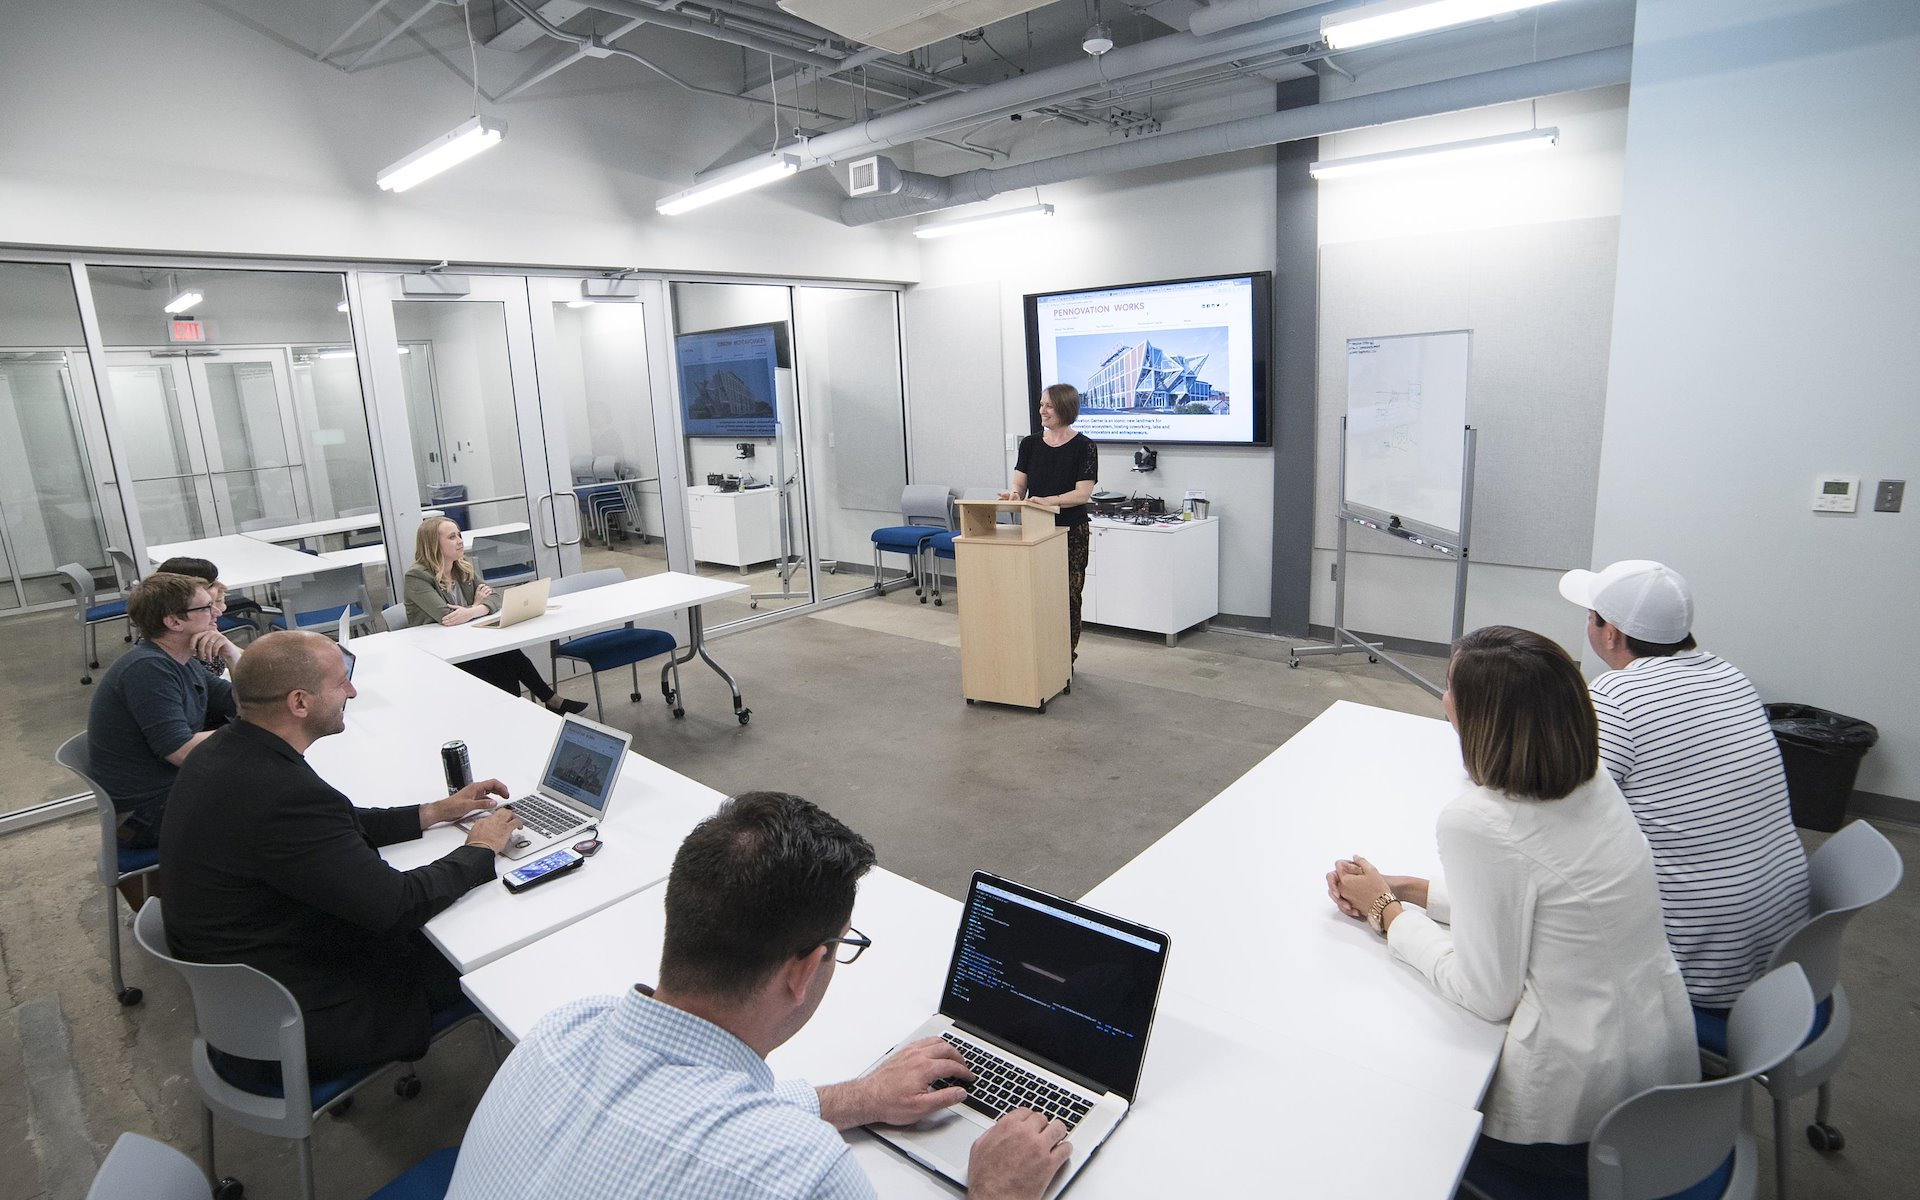 The Pennovation Center powered by 1776 - 133 Collaborate Seminar Room South